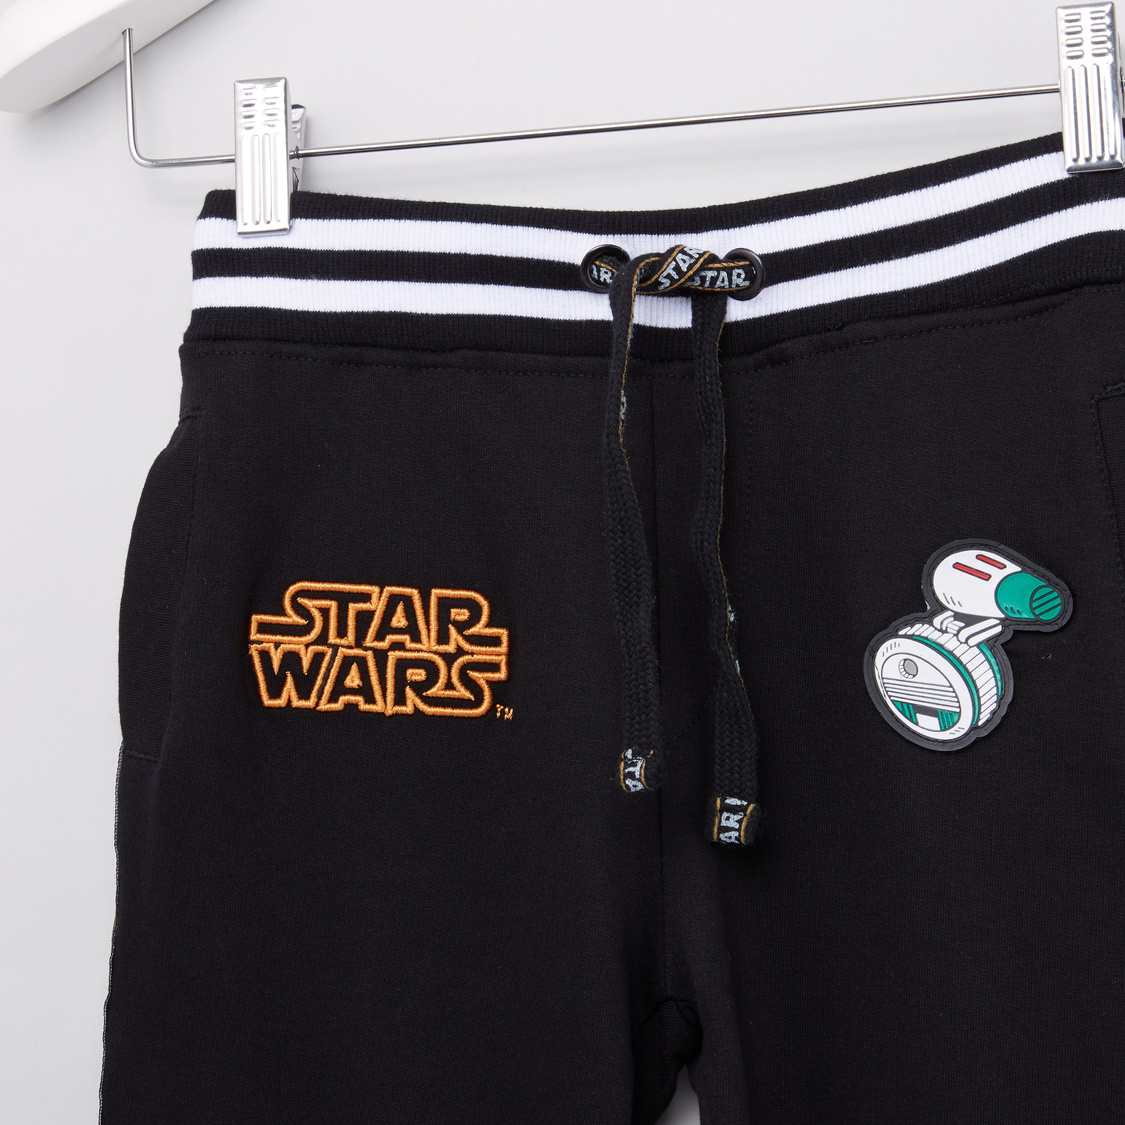 Star Wars Printed Jog Pants with Pocket Detail and Drawstring